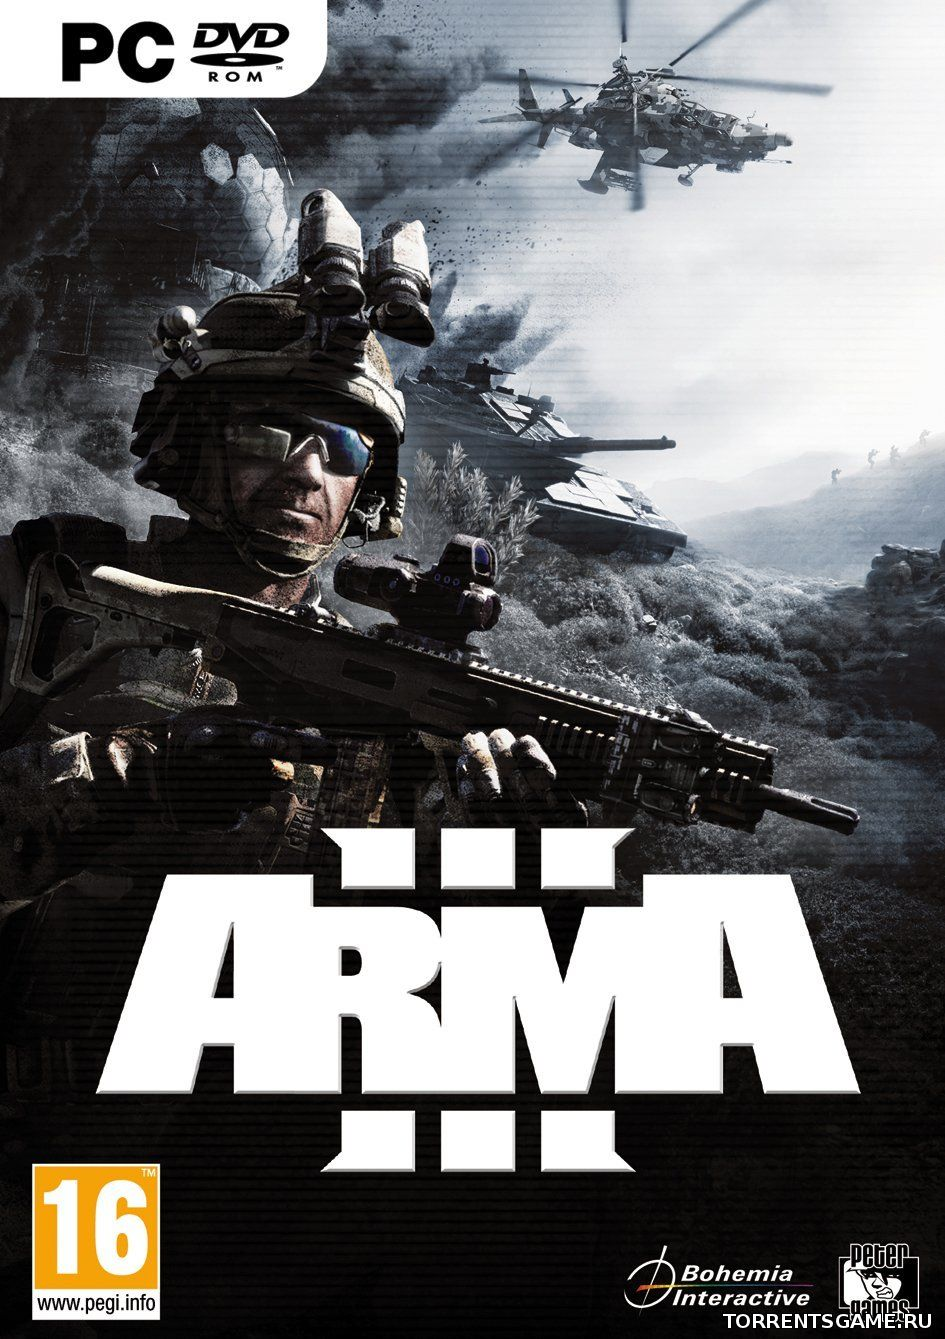 http://torrentsgame.ru/load/games/action/arma_3/2-1-0-65